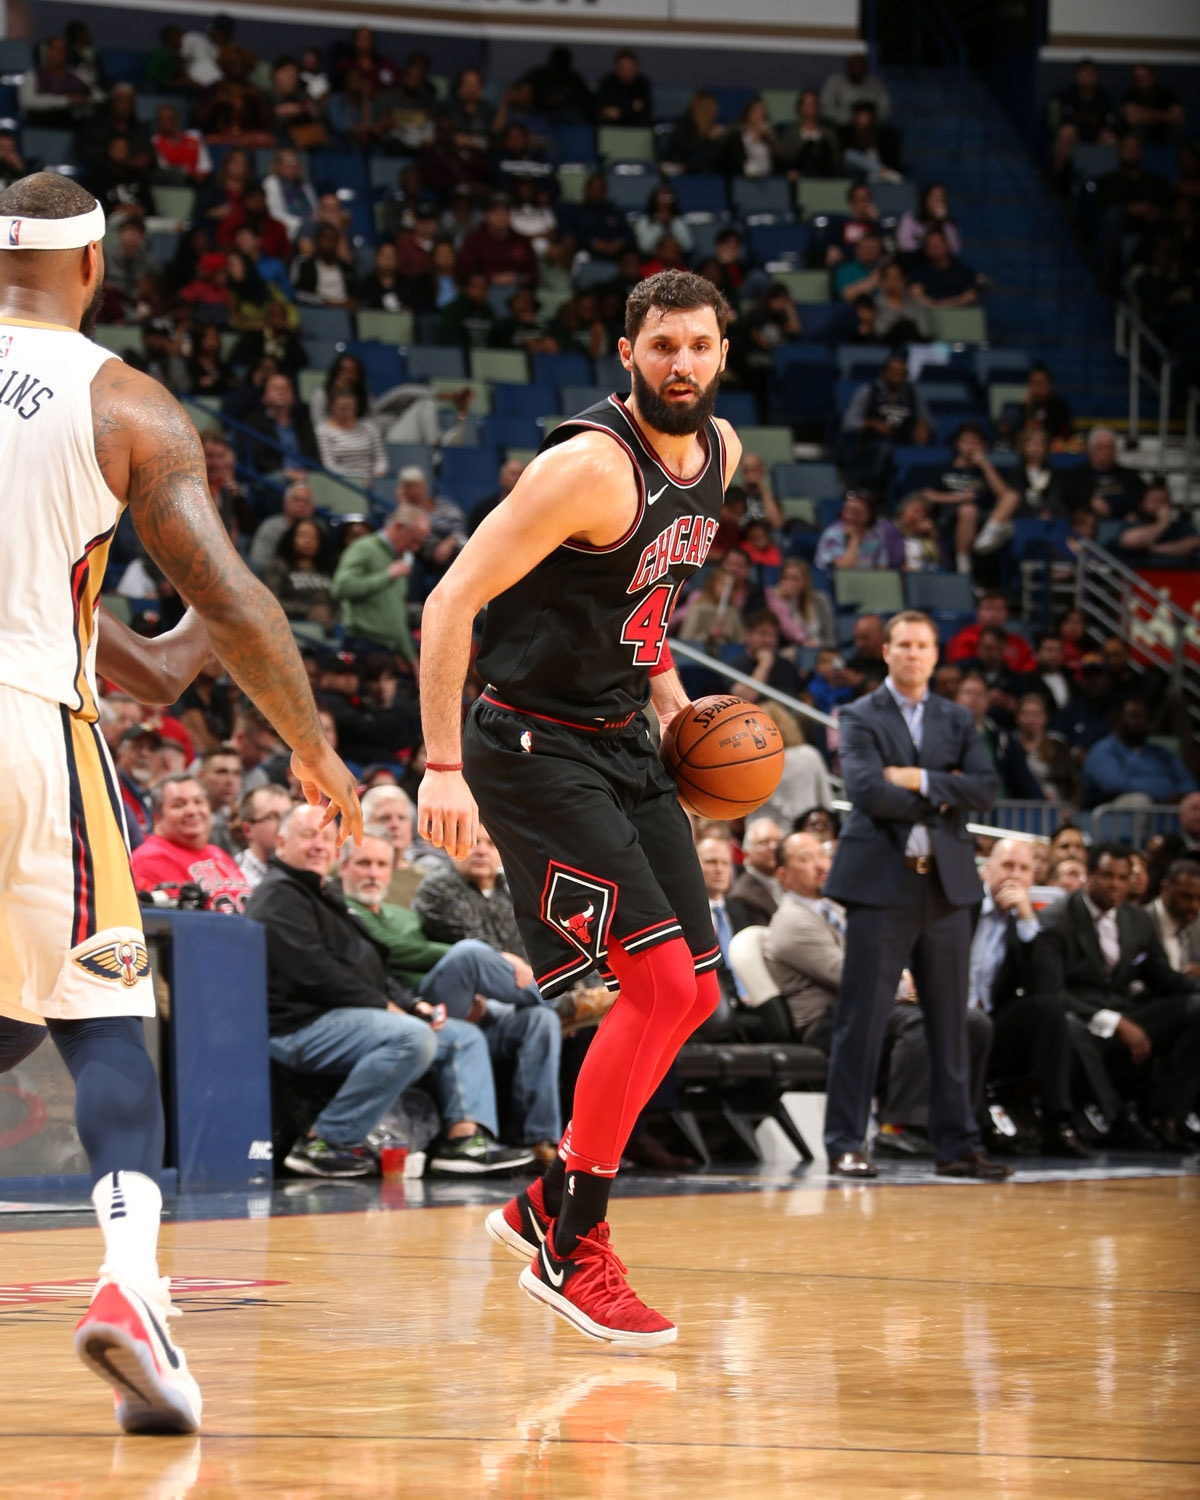 Mirotic dribbling the ball agains the Pelicans.